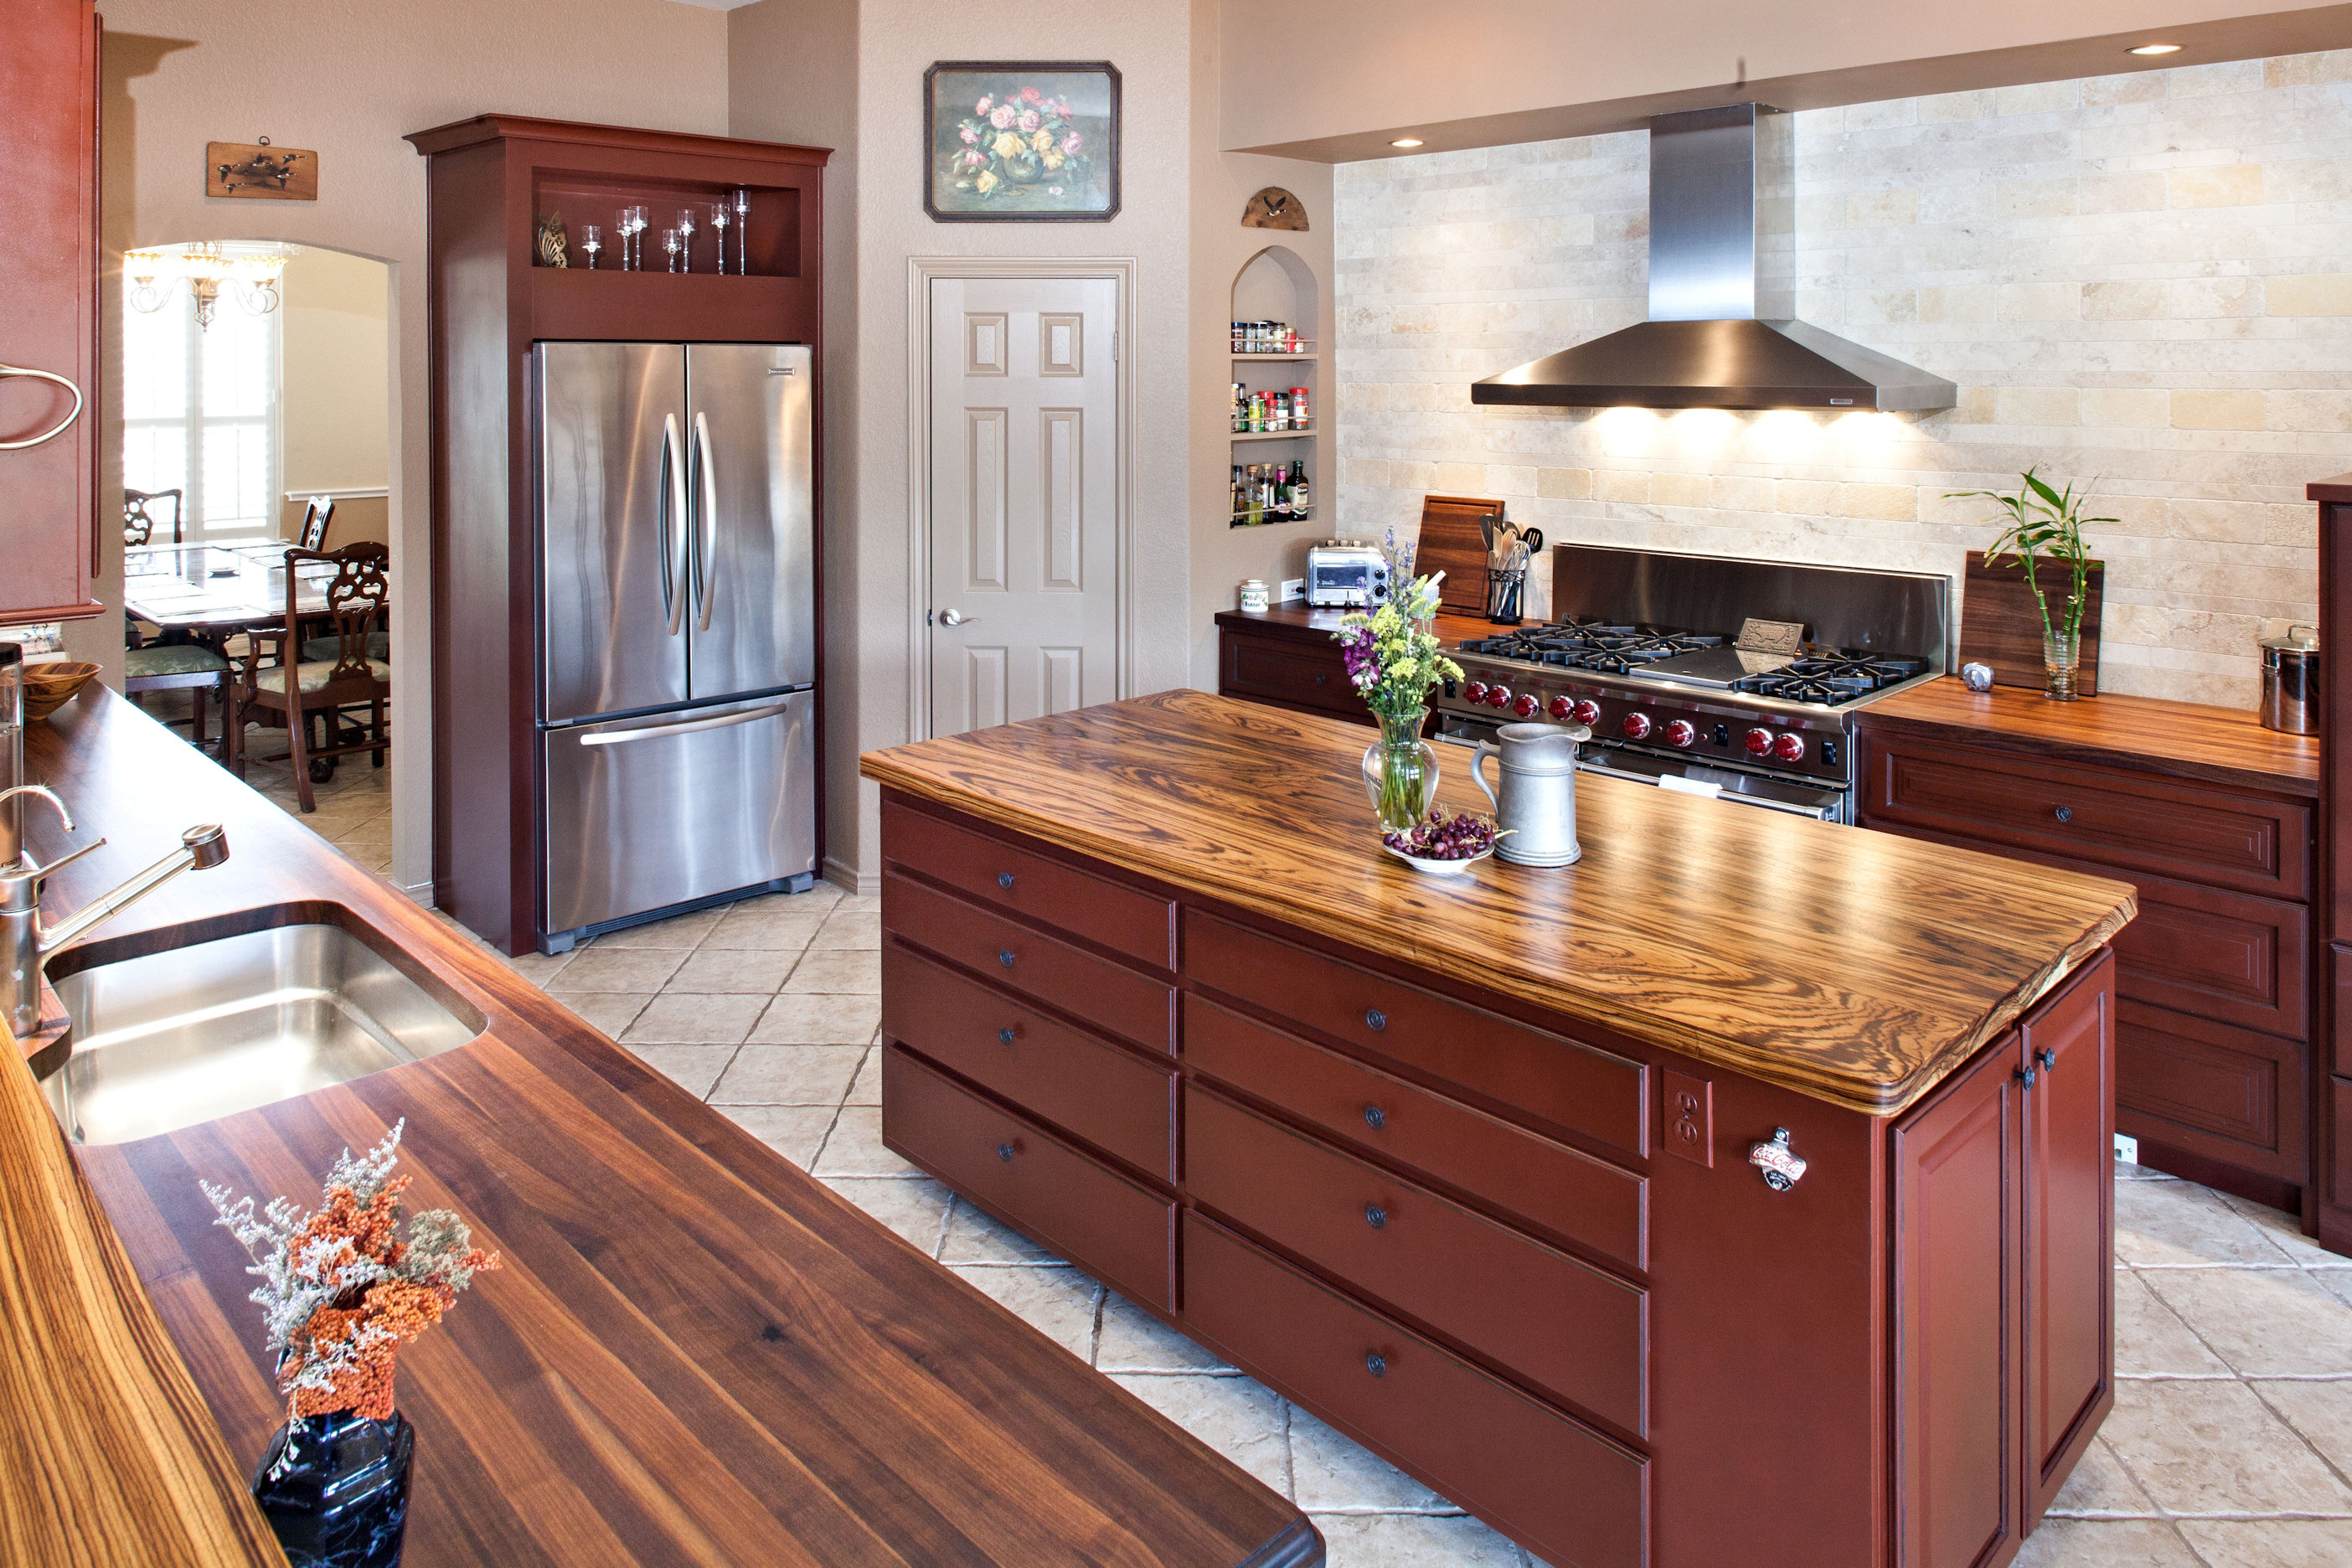 Zebra wood kitchen cabinets - Zebrawood Face Grain Custom Wood Island Countertop